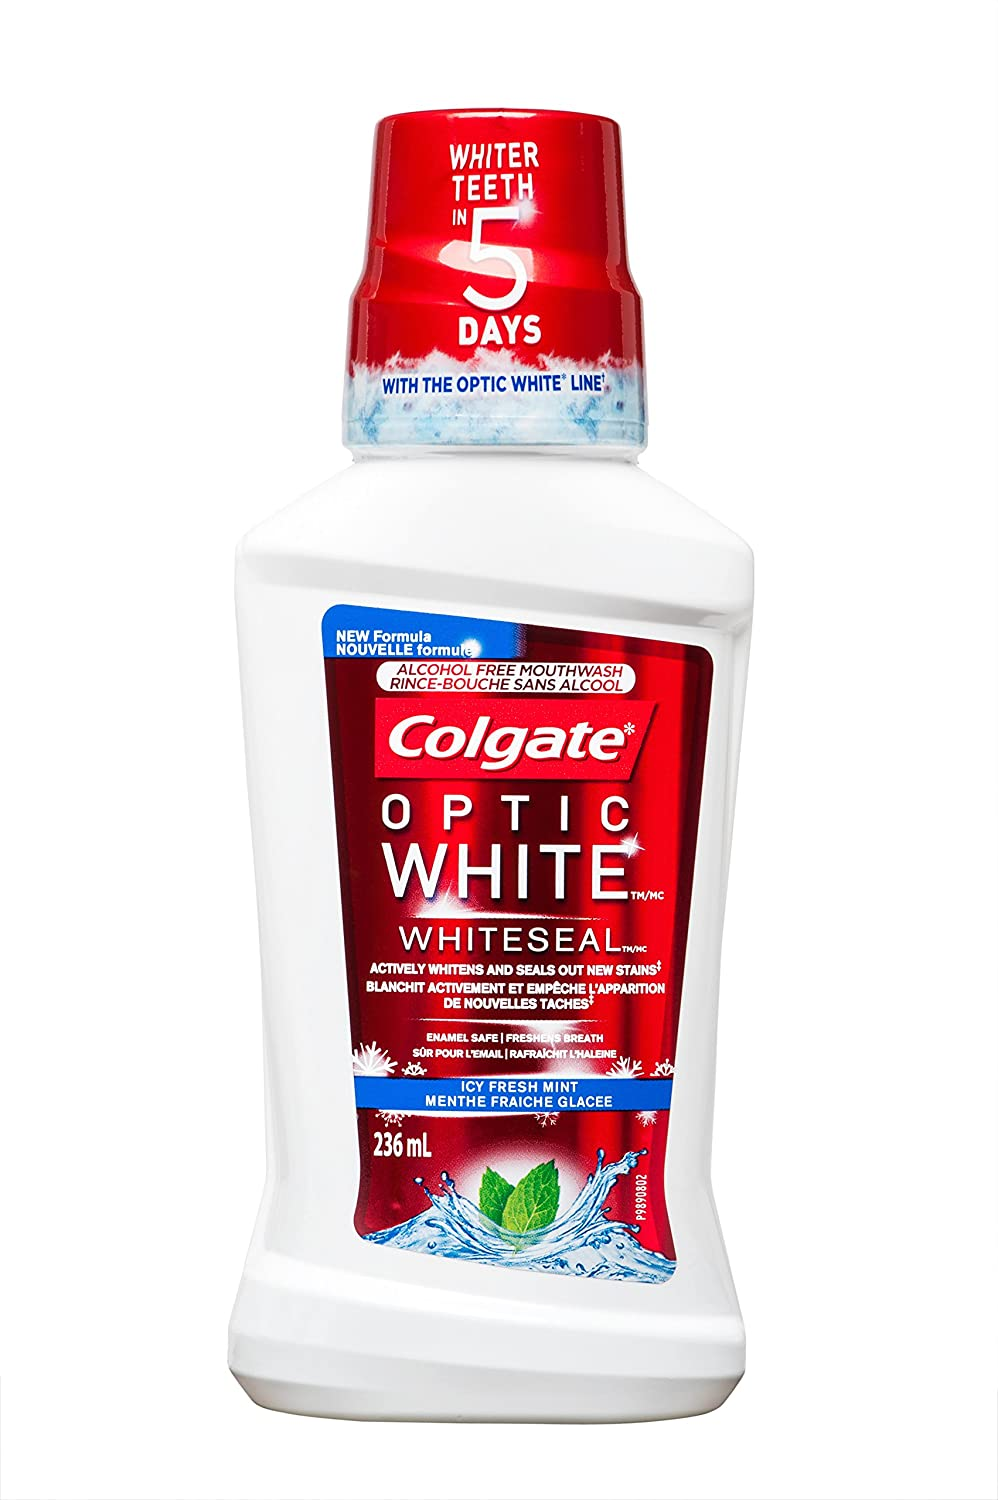 Colgate Optic White Icy Fresh Mint Alcohol Free Mouthwash, 236 mL 313679